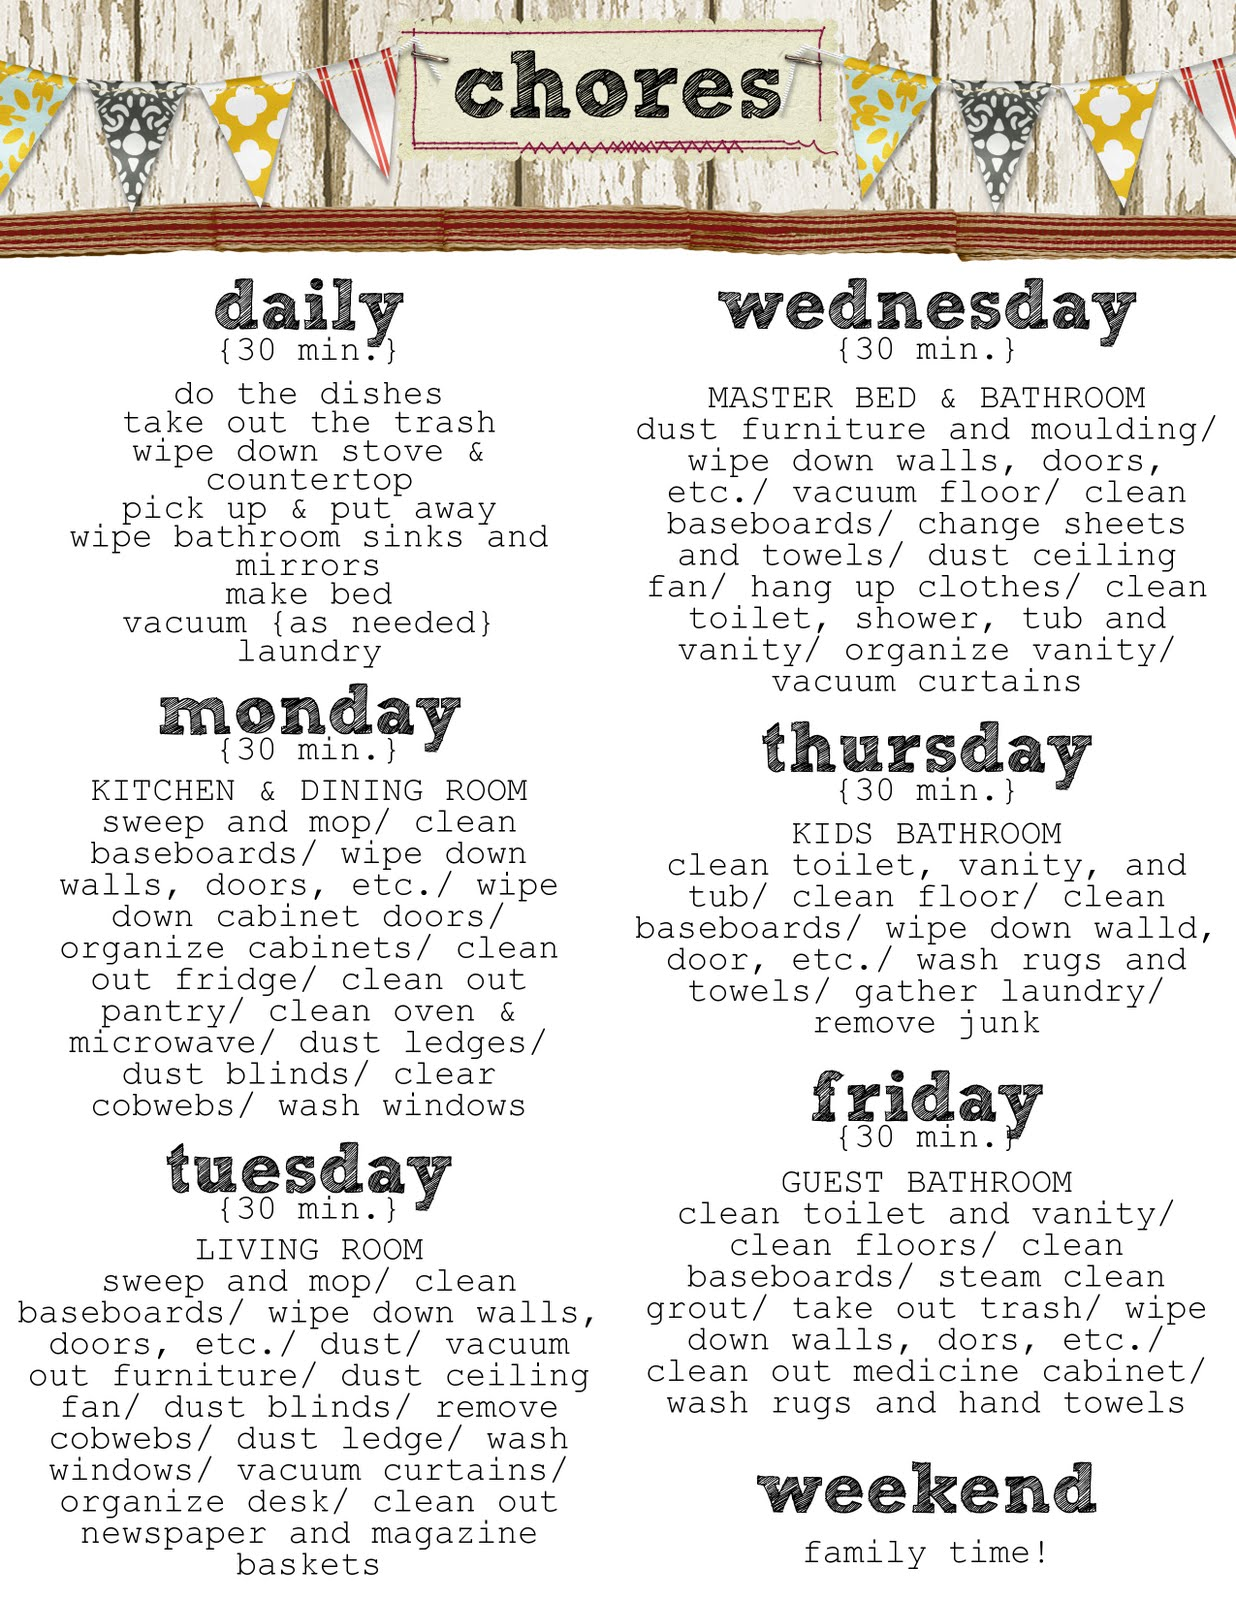 8 Images of Printable Daily Chores Schedule